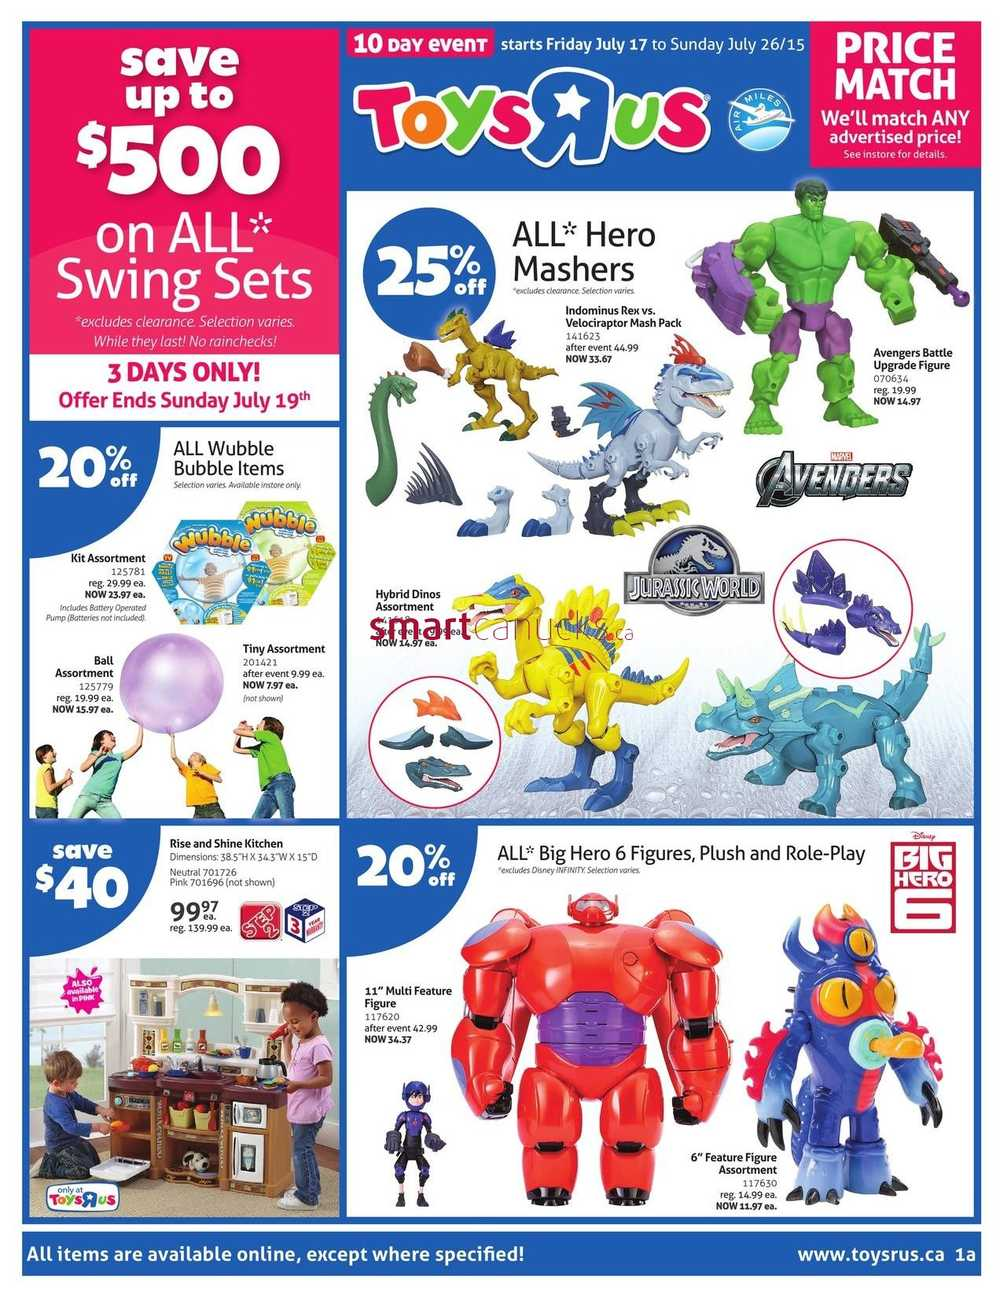 All Toys Toys R Us : Toys r us flyer july to